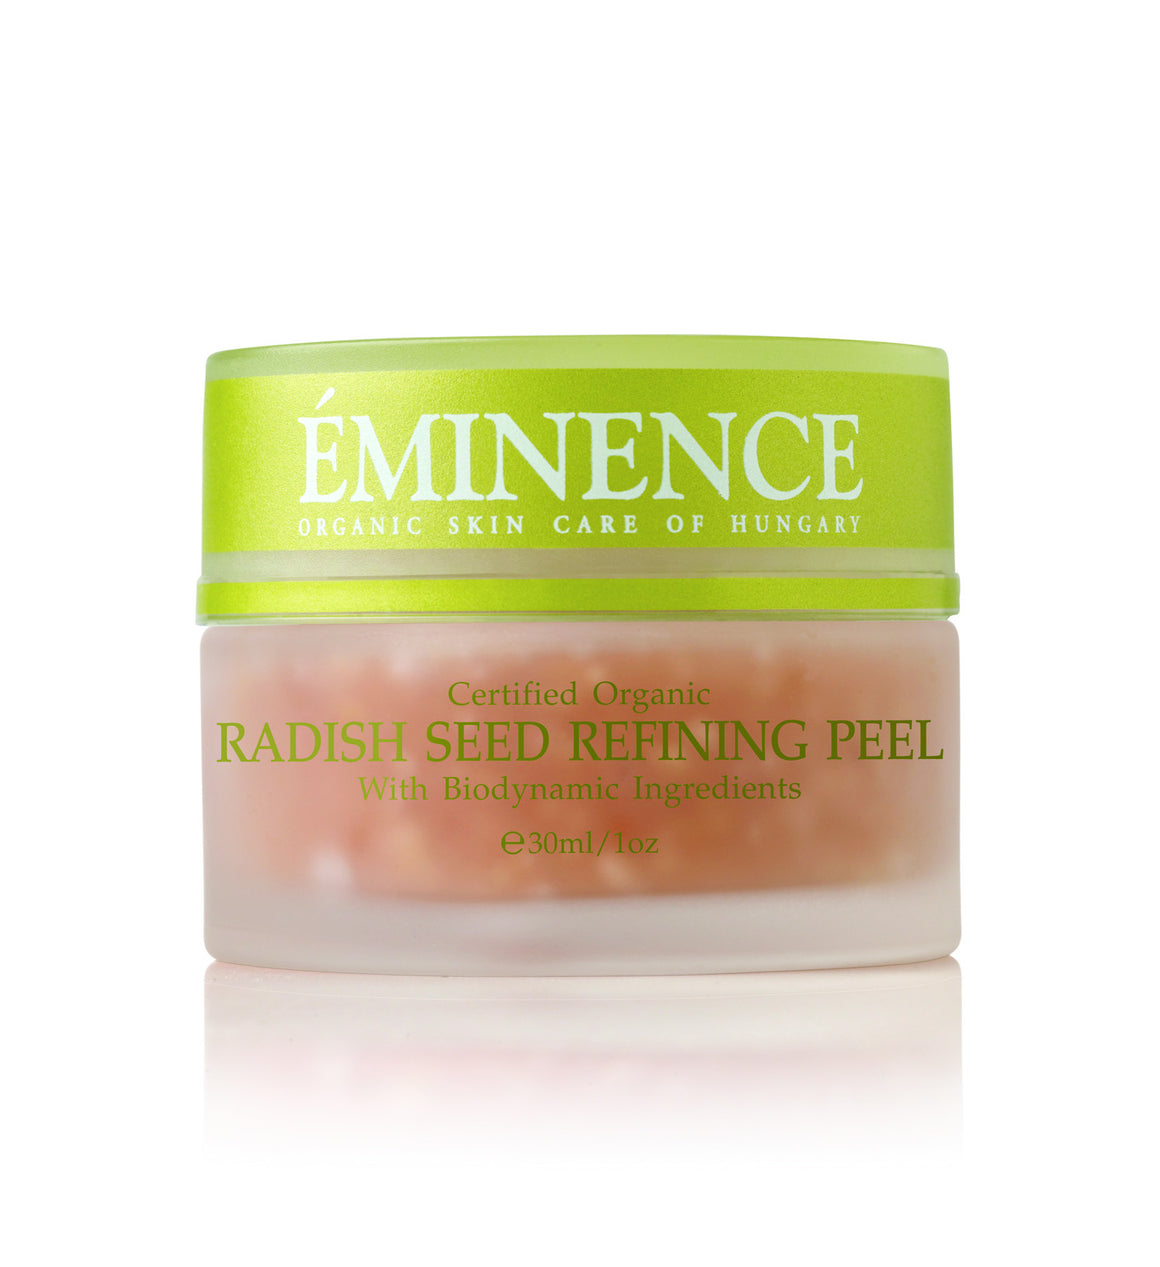 100% Organic Acne Treatment - Radish Seed Refining Peel - Organic Skin Therapy